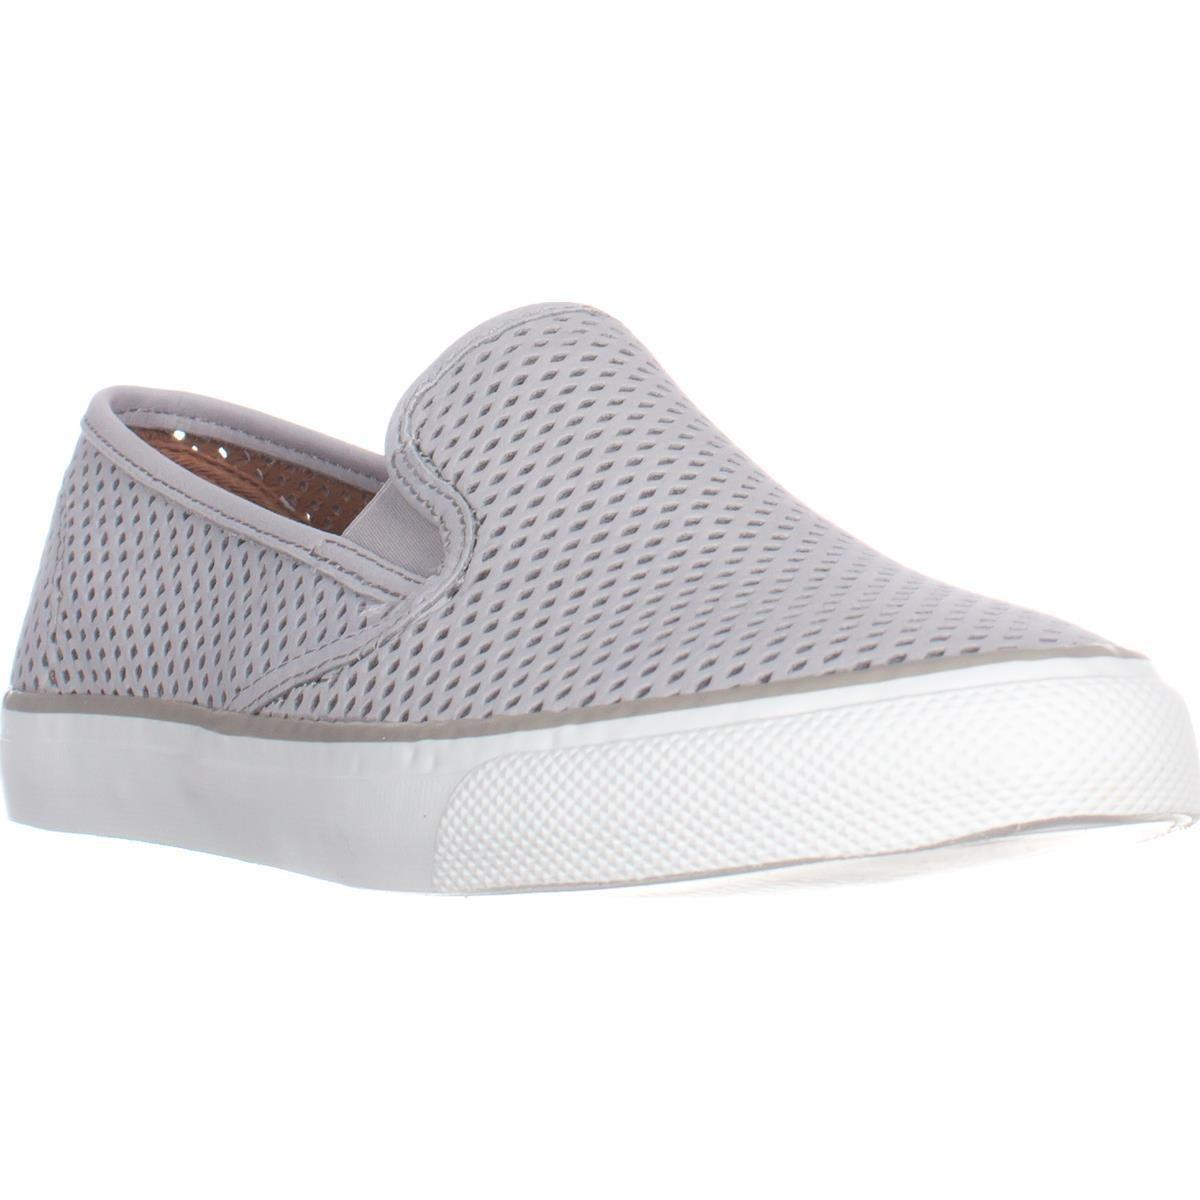 Lyst Sperry Top Sider Seaside Perforated Slip On Fashion